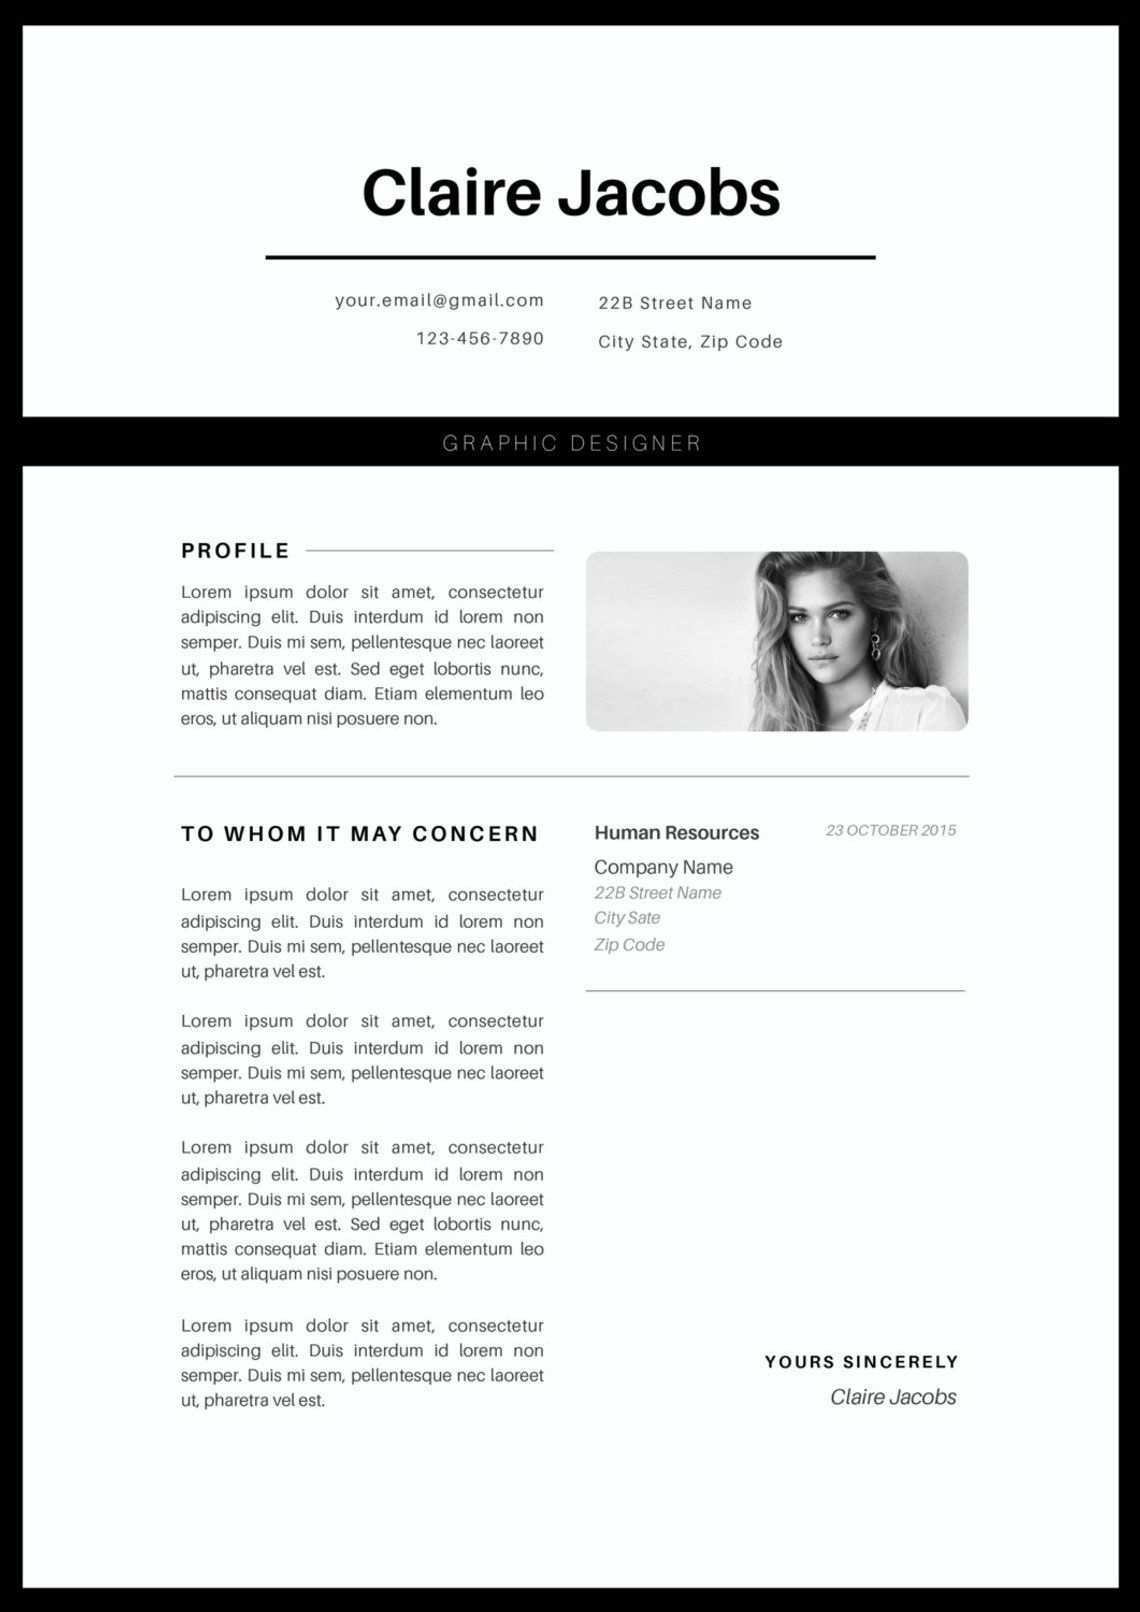 Creative Resume Template Cv Template Instant Download Editable In Ms Word And Pages Cover Letter Size A4 And Us Letter Lebenslaufvorlage Kreativer Lebenslauf Vorlagen Lebenslauf